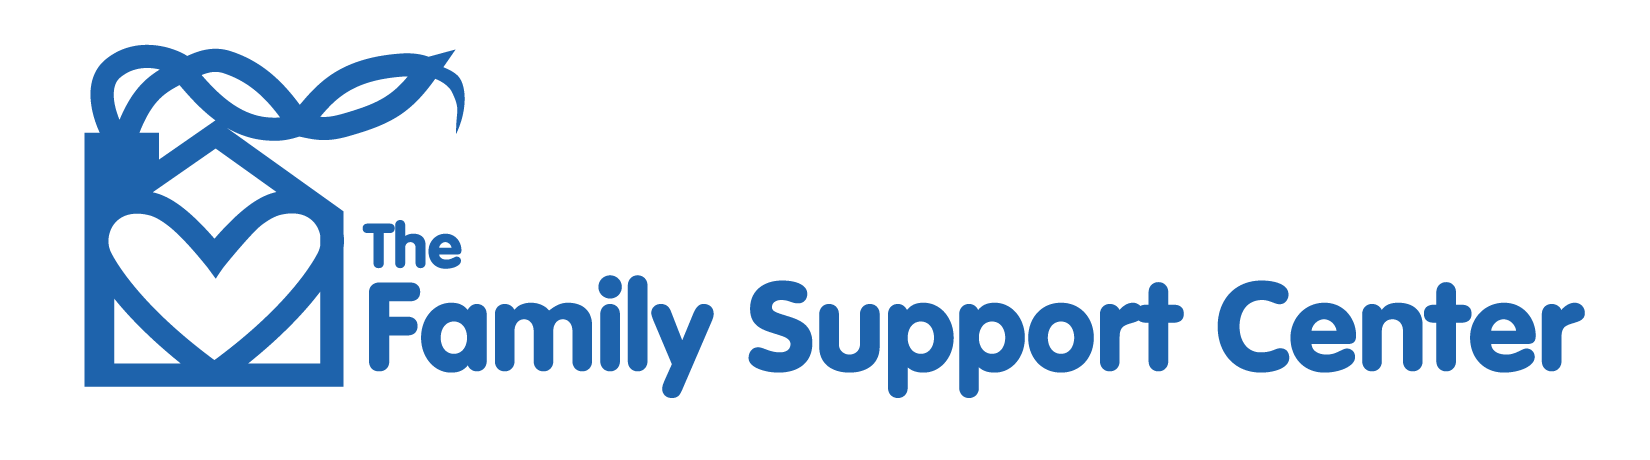 the family support centerfamily support center